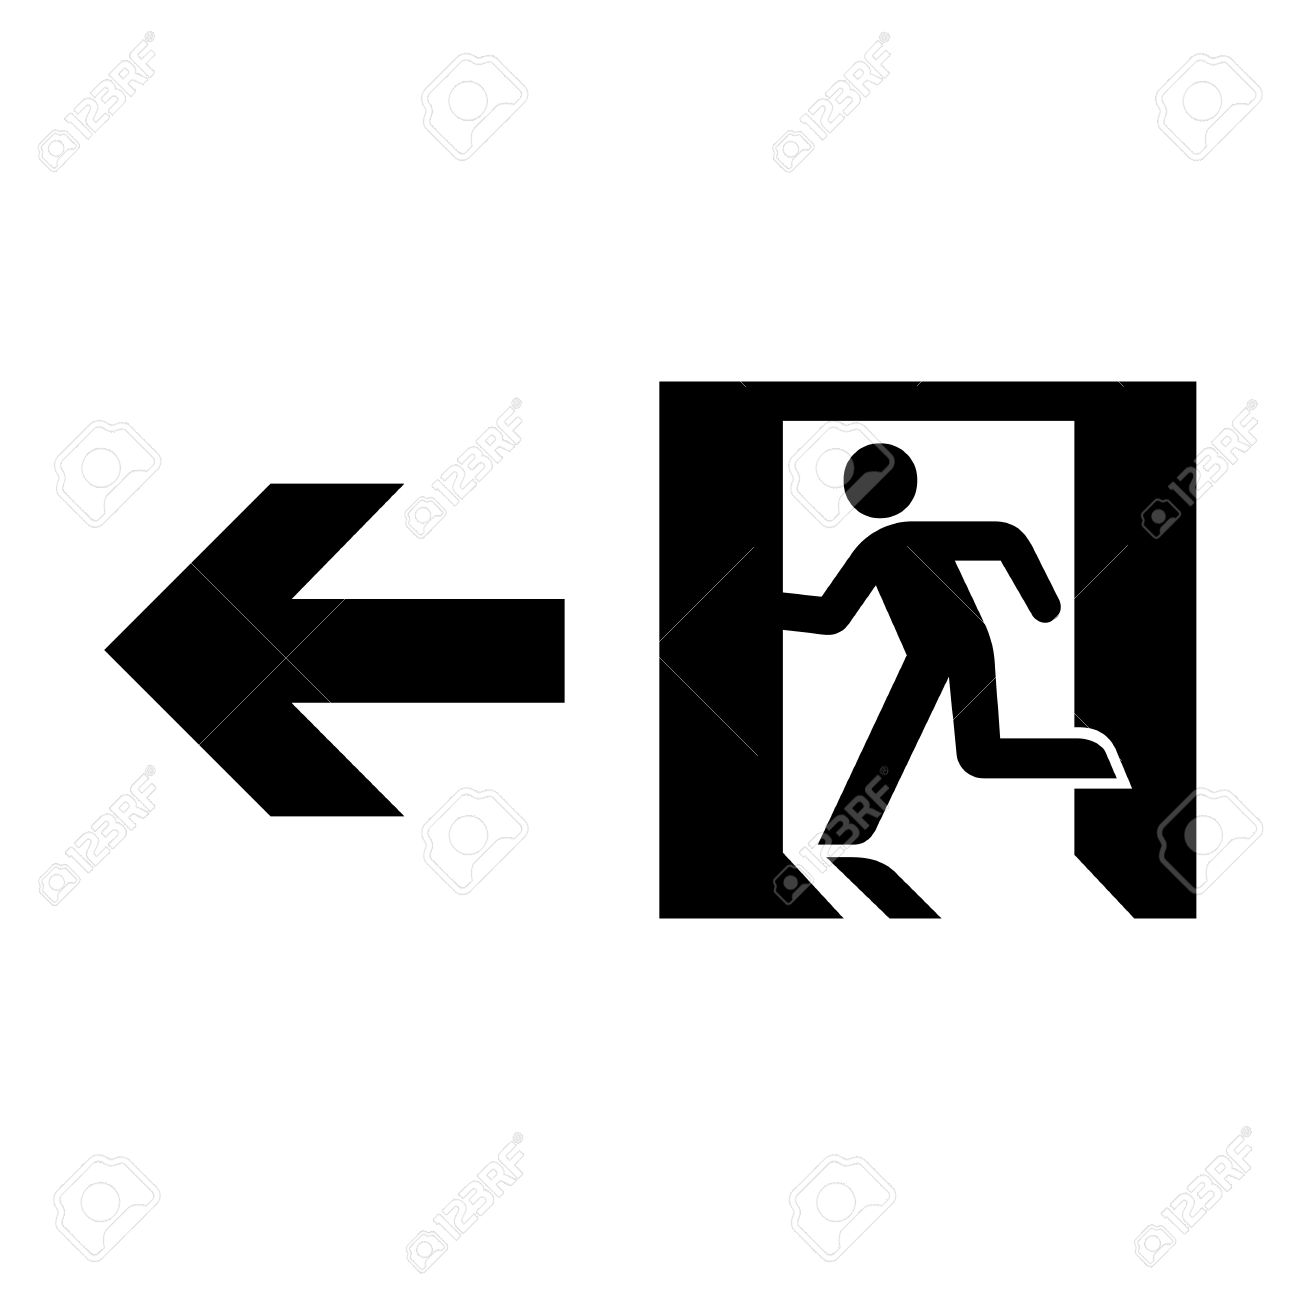 vector emergency exit sign on white illustration eps10 royalty free